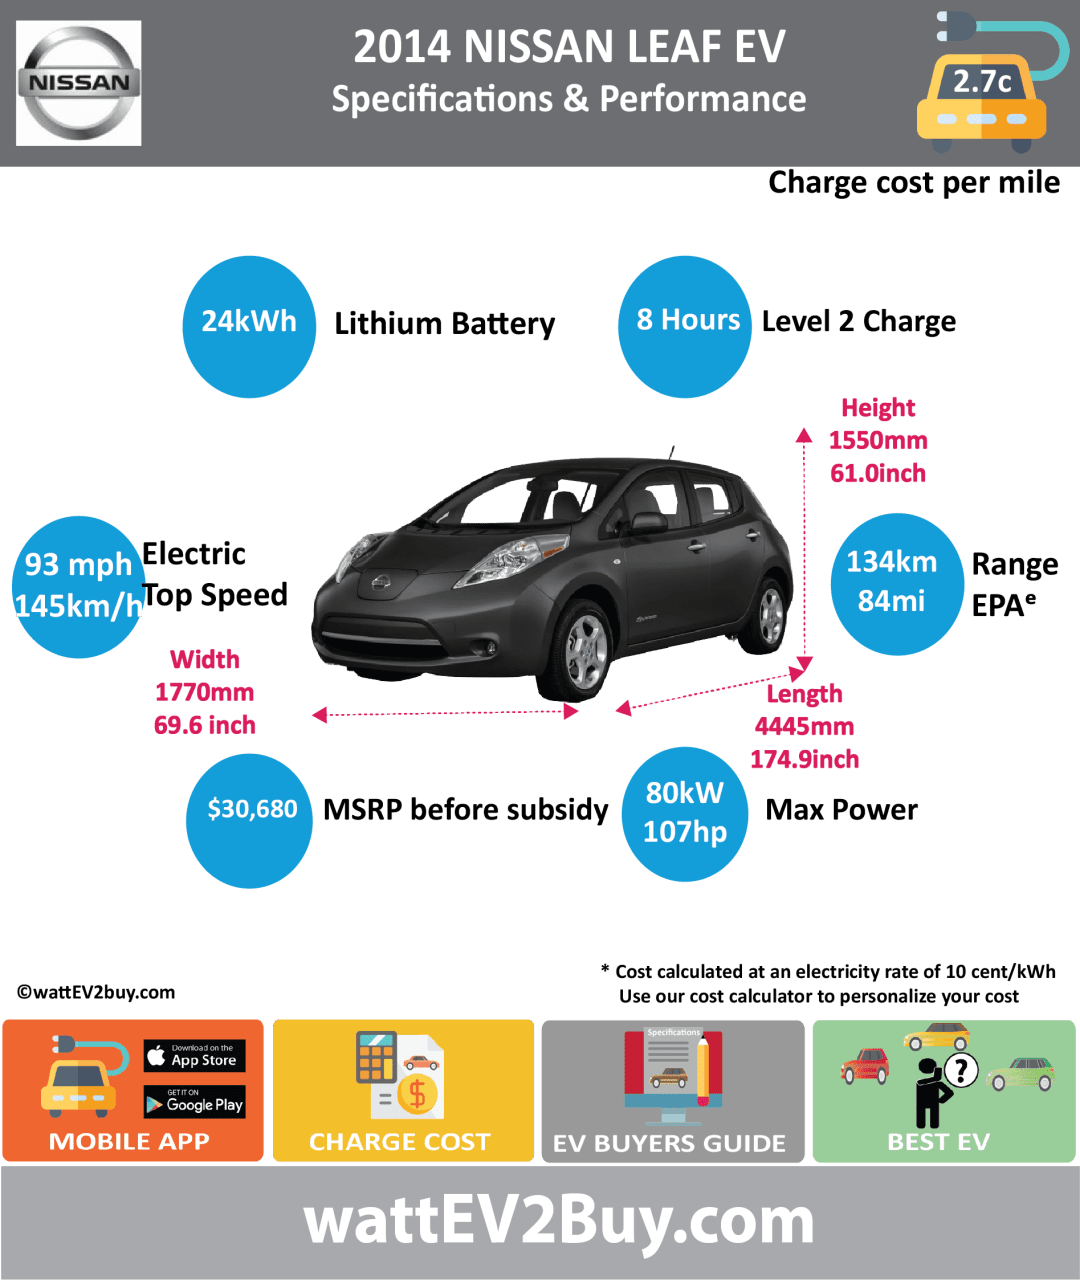 NISSAN LEAF EV wattev2Buy.com 2011 2012 2013 2014 2015 2016 2017 2018 Battery Chemistry Battery Capacity kWh 24 30 40 Battery Nominal rating kWh 21.3 Voltage V Amps Ah Cells 192 Modules 48 Weight (kg) 218 Cooling Air Cycles Depth of Discharge (DOD) Energy Density Wh/kg 140 Battery Manufacturer JV Nissan / NEC Battery Warranty - years 8 Battery Warranty - miles 100000 Battery Electric Range - NEDC Mi Battery Electric Range - NEDC km Battery Electric Range - EPA Mi 75 84.0 108 150 Battery Electric Range - EPA km 120 134 172 240 Electric Top Speed - mph 93 87.5 Electric Top Speed - km/h 149 140 Acceleration 0 - 60mph sec 9.9 8 Onboard Charger kW 3.6 3.3 6.6 6.6 Charger Output 3.3 LV 1 Charge kW LV 1 Charge Time (Hours) 16 LV 2 Charge kW LV 2 Charge Time (Hours) 8 8 8 LV 3 CCS/Combo kW 44 50 LV 3 Charge Time (min to 80%) 40 Charge Connector SAE J1772 CHAdeMO MPGe Combined - miles 99 115 114 114 MPGe Combined - km MPGe City - miles 136 MPGe City - km MPGe Highway - miles 101 MPGe Highway - km Max Power - hp 107.2816 107 147.5122 Max Power - kW 80 79.79001059 110 Max Torque - lb.ft 210 187 236 Max Torque - N.m 280 320 Drivetrain AC electric Electric Motor - Rear Electric Motor - Front Yes Electric Motor Output kW 80 110 Transmission Energy Consumption kWh/100km 21.2 18.6 18.7 19.1 MSRP (before incentives & destination) $29,010.00 $32,698.00 $29,900 Vehicle Doors Seating Dimensions Luggage (L) 435 GVWR (kg) 2020 Curb Weight (kg) Payload Capacity (lbs) Towing Capacity (lbs) Ground Clearance (mm) Lenght (mm) 4445 4481 Width (mm) 1770 1791 Height (mm) 1550 1560 Wheelbase (mm) 2700 2700 Lenght (inc) 174.9 176.3 Width (inc) 69.6 70.5 Height (inc) 61.0 61.4 Wheelbase (inc) 106.2 106.2 Other Market Class Relaunch Safety Level Trims S / SL / SV S / SL / SV